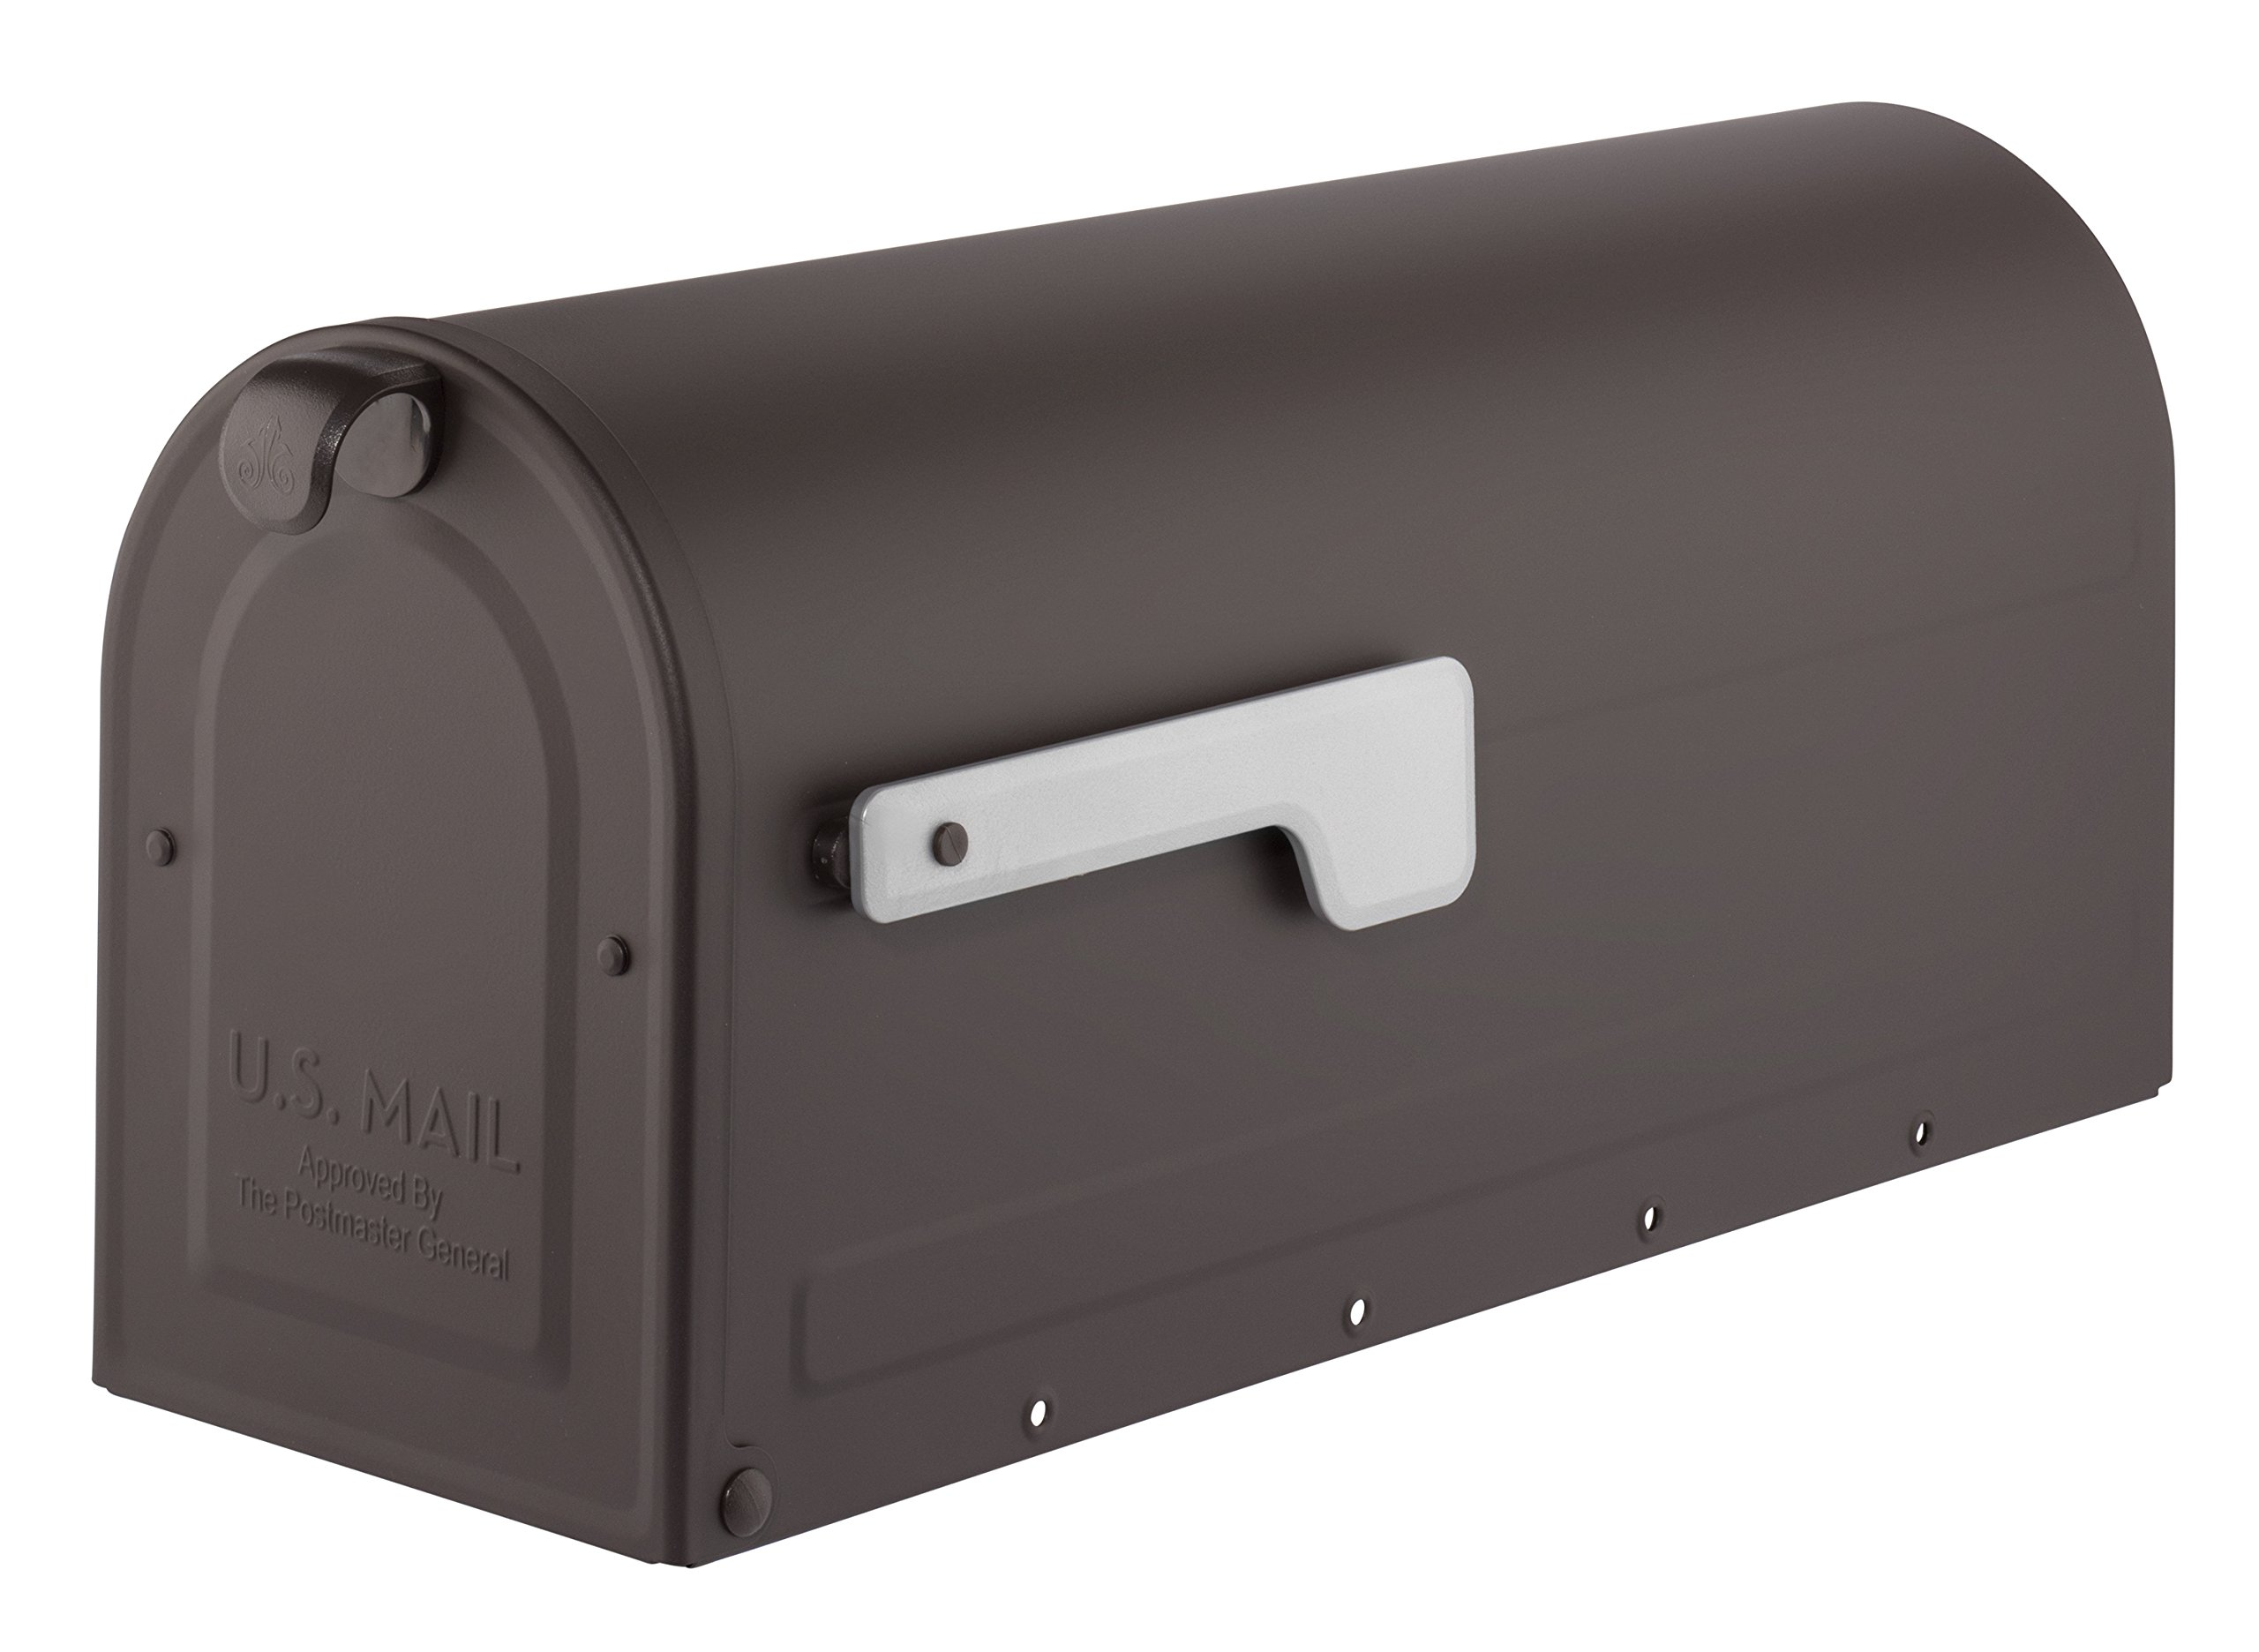 ARCHITECTURAL MAILBOXES 7600RZ Architectural Mailboxes MB1 Post Mount Mailbox with Silver Flag MB1 Post Mount Mailbox, Medium, Rubbed Bronze by ARCHITECTURAL MAILBOXES